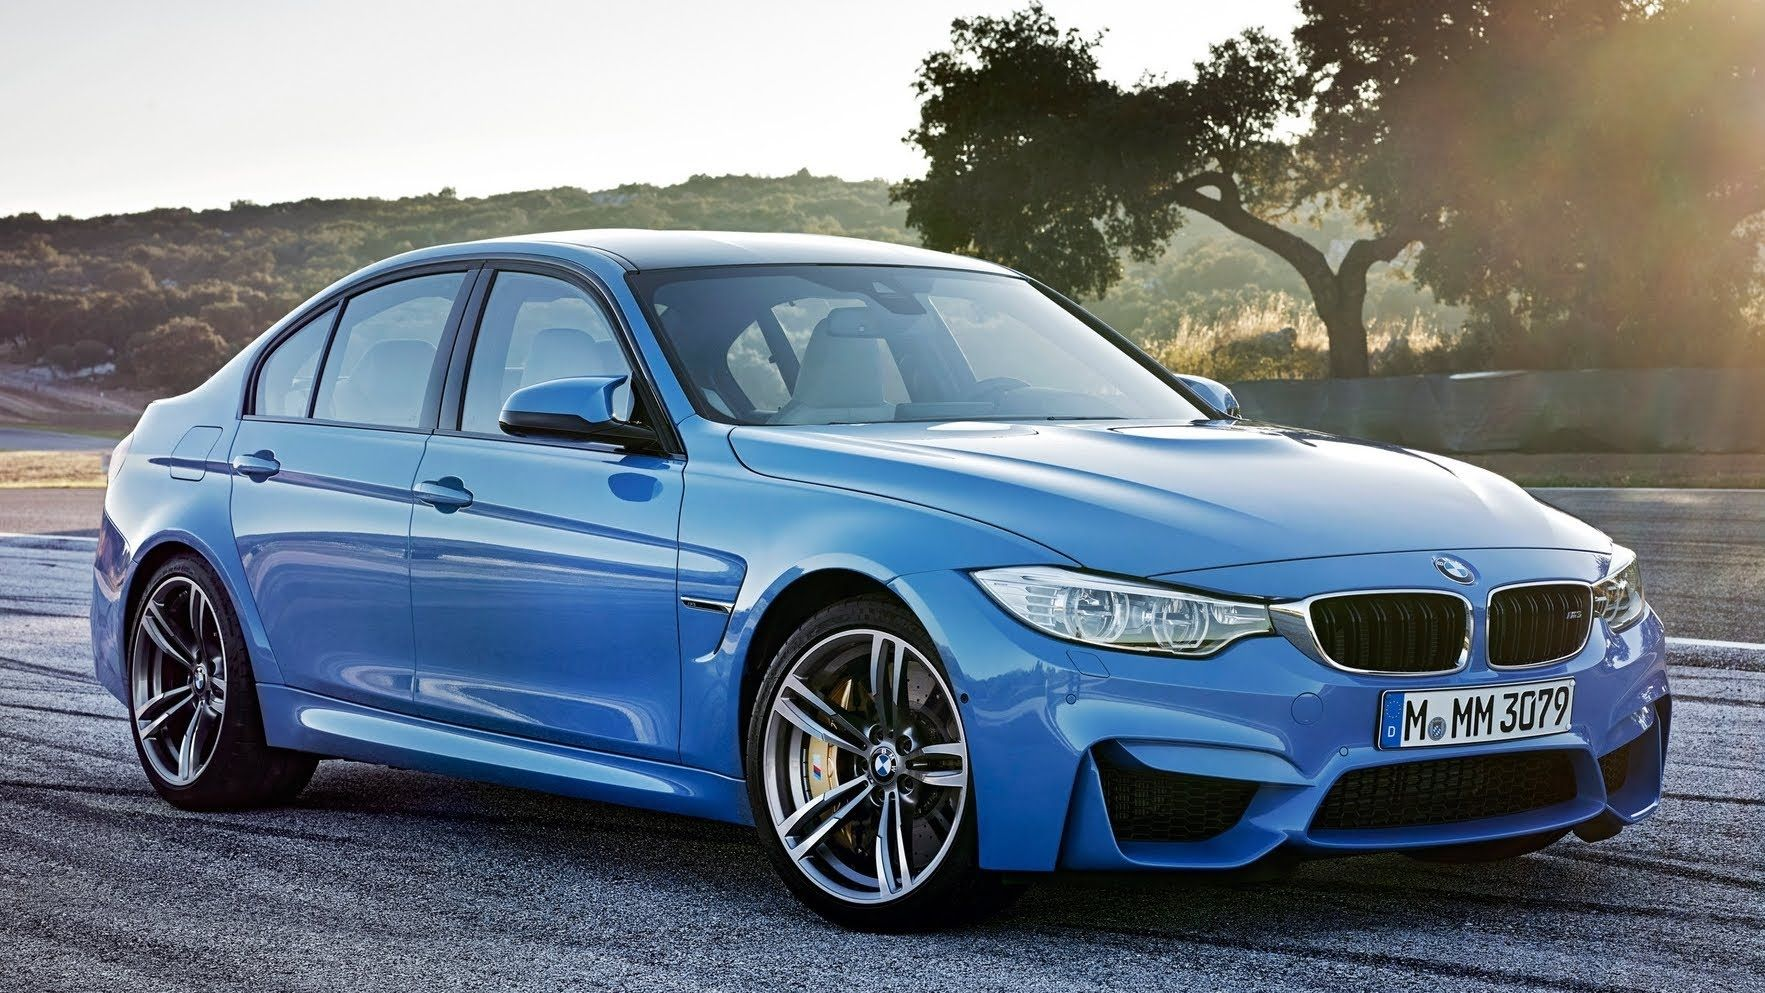 2017 bmw m3 sedan changes price release date http newautocarhq com 2017 bmw m3 sedan changes price release date stuff to buy pinterest bmw m3